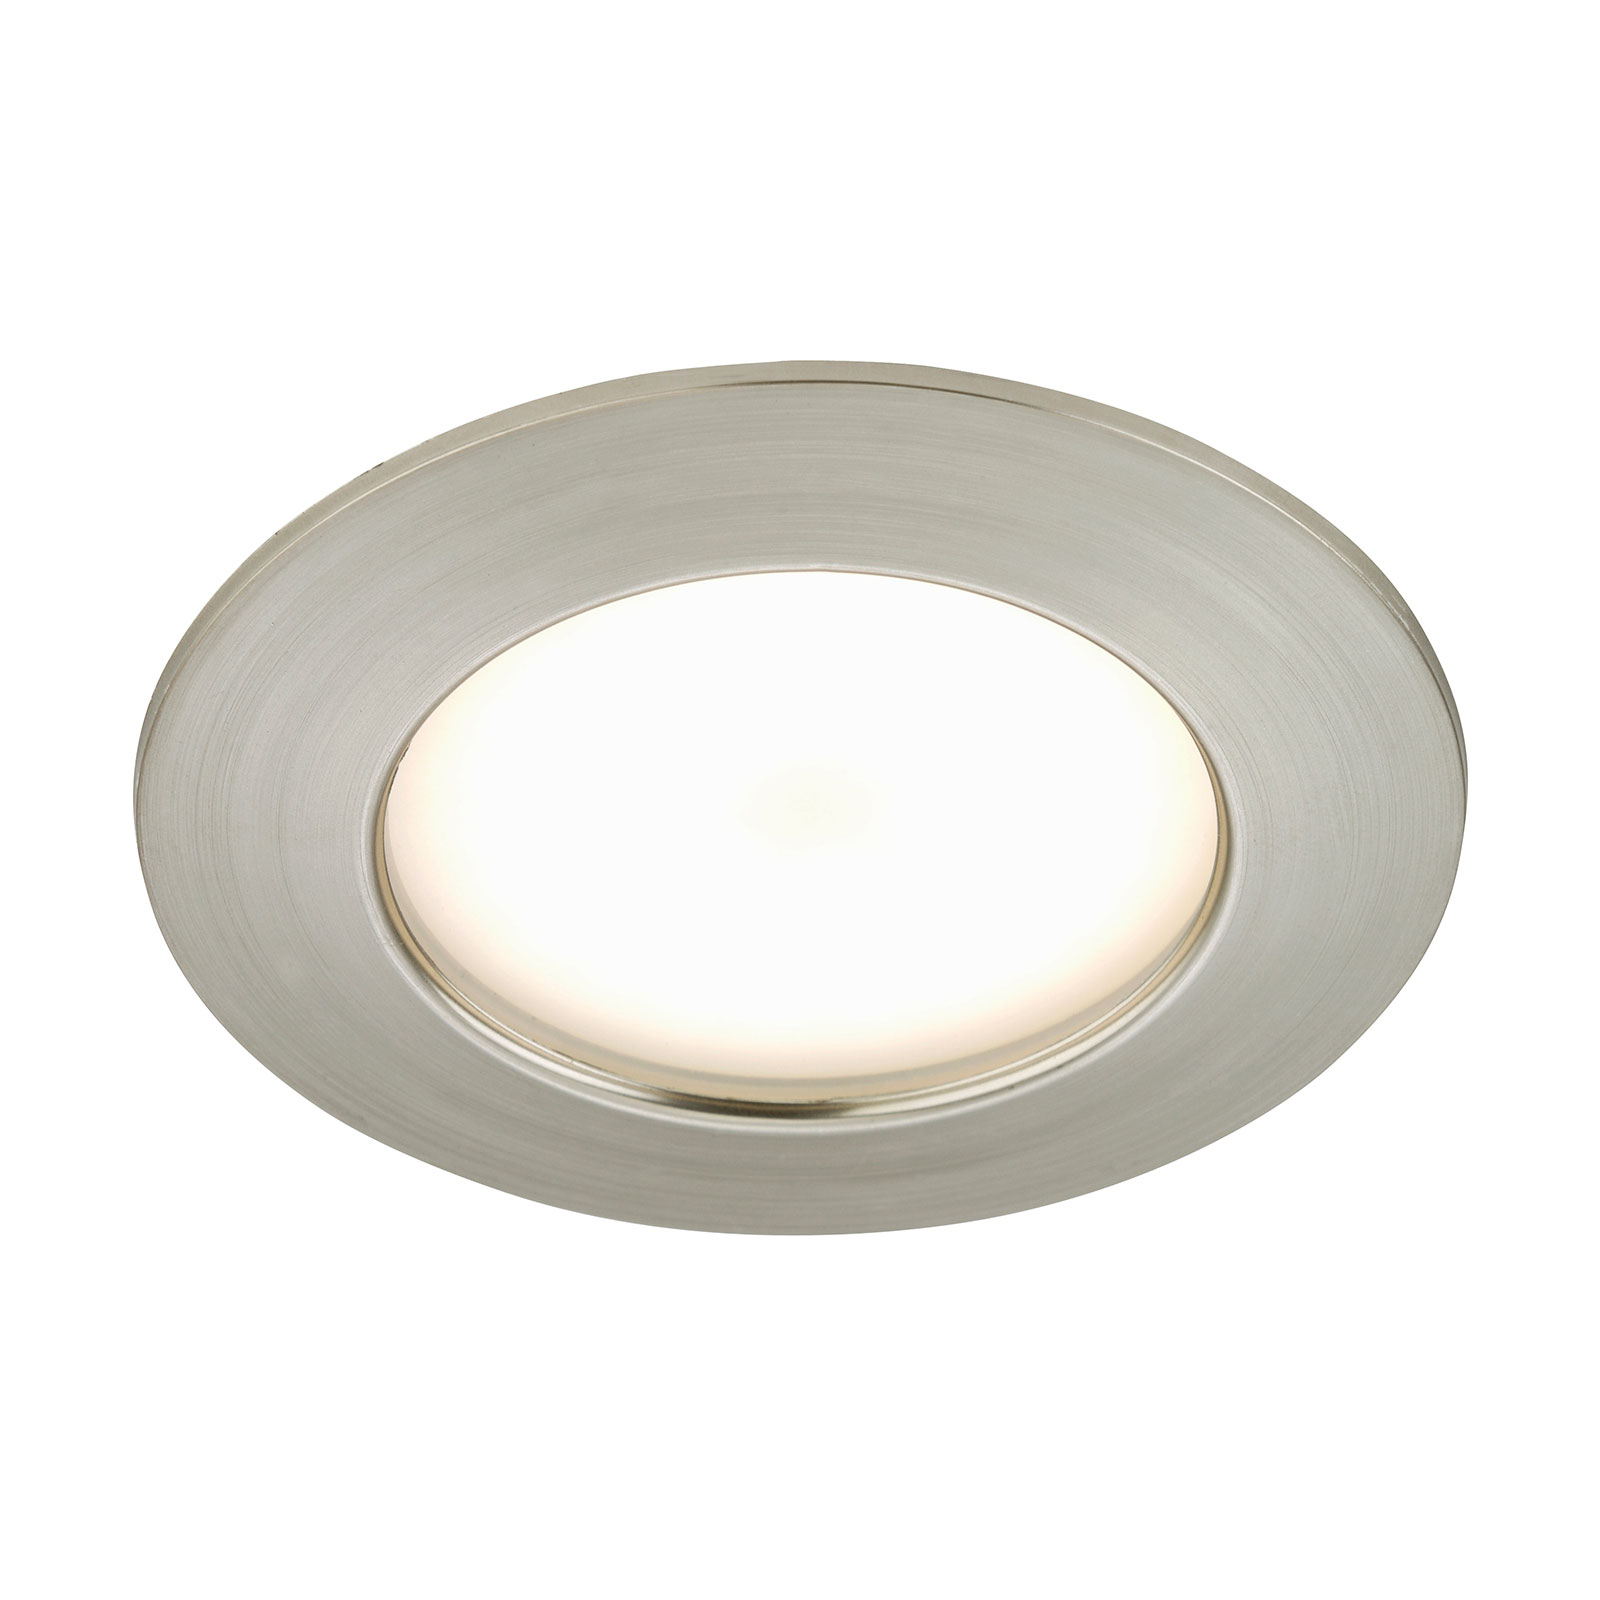 Powerful LED recessed light Elli, dimmable_1510330_1